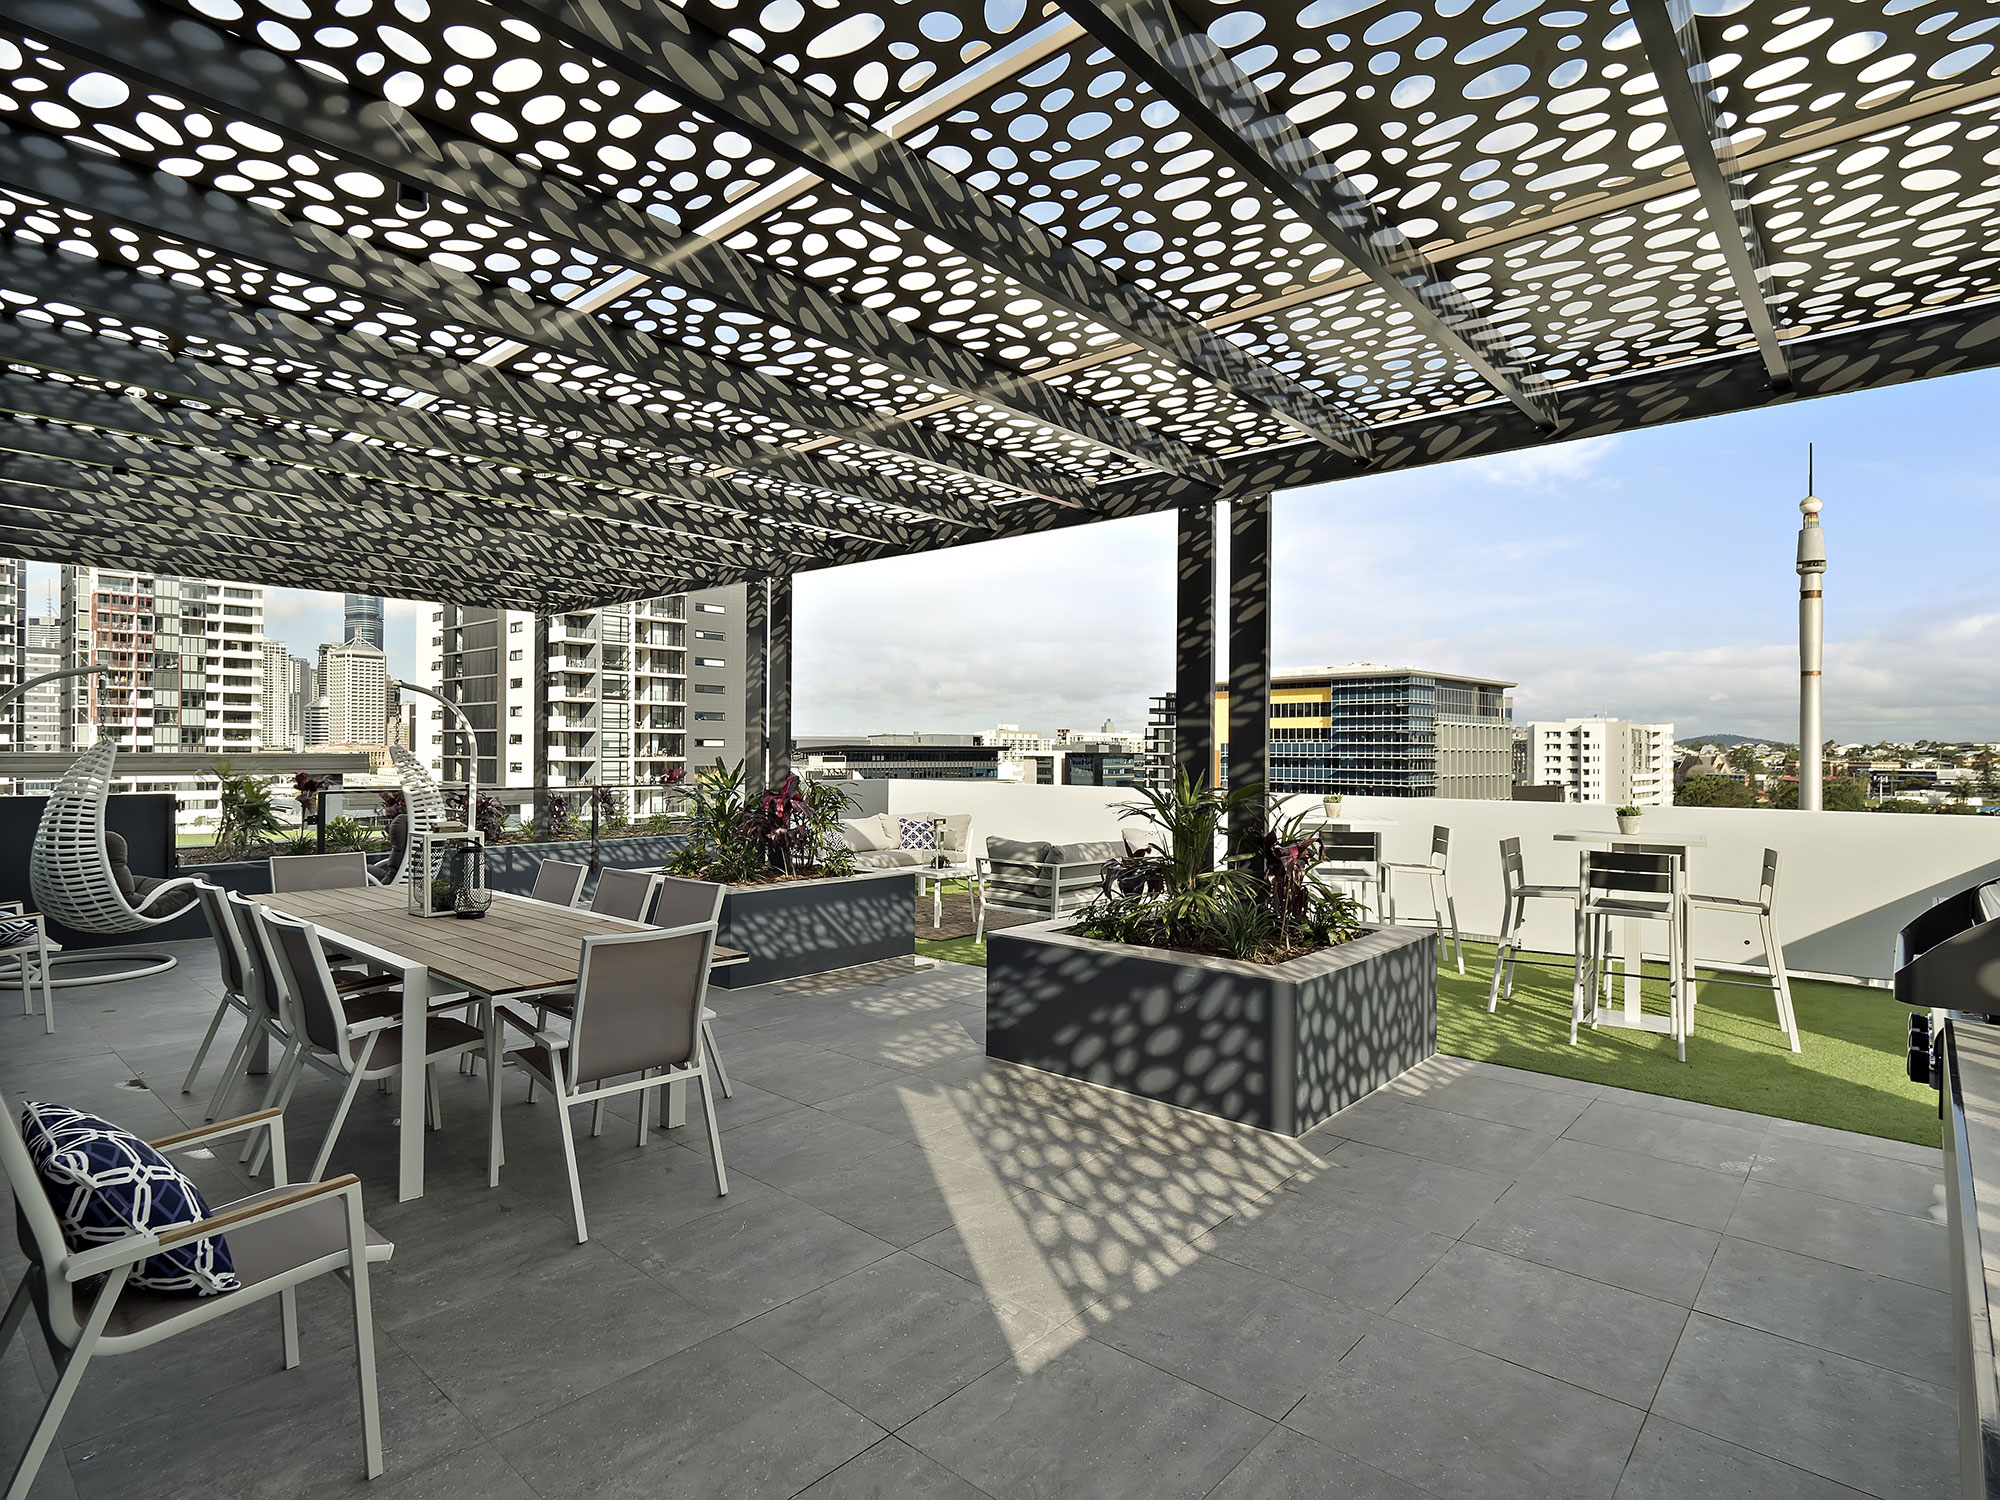 7 Manning St completion photography roof top entertaining area